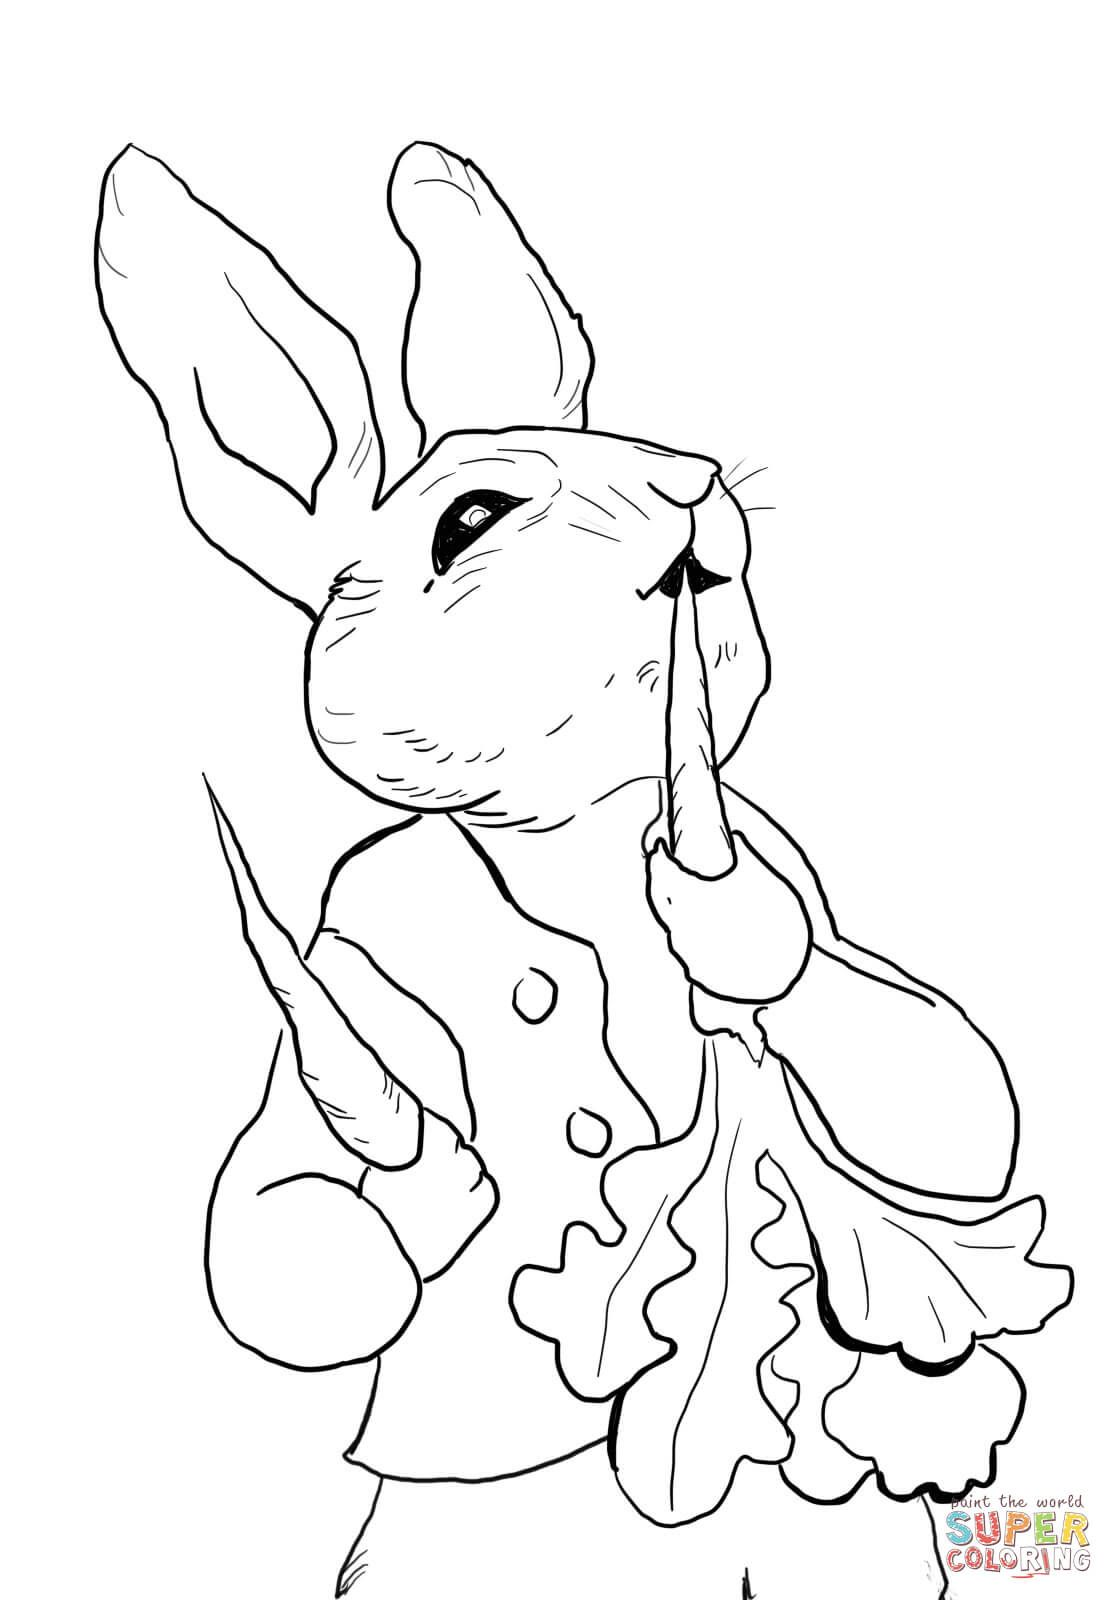 Peter Rabbit Eating Radishes coloring page from Peter Rabbit.